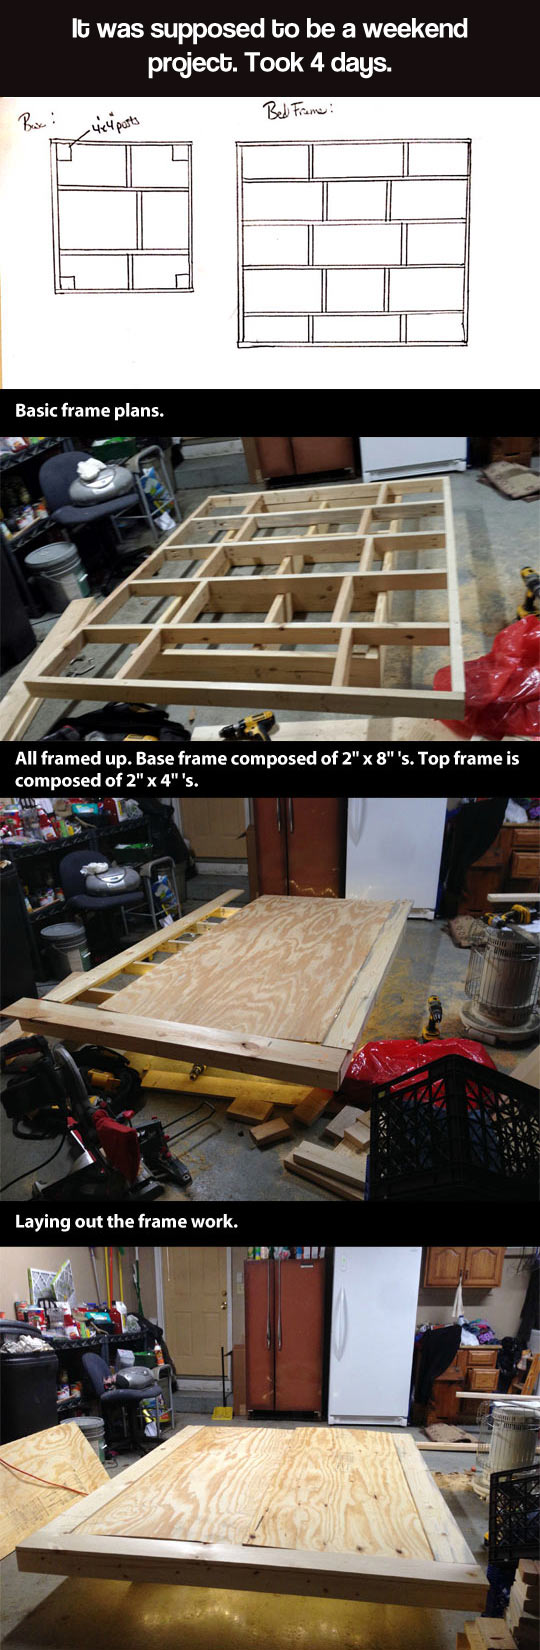 funny-bed-weekend-project-wood